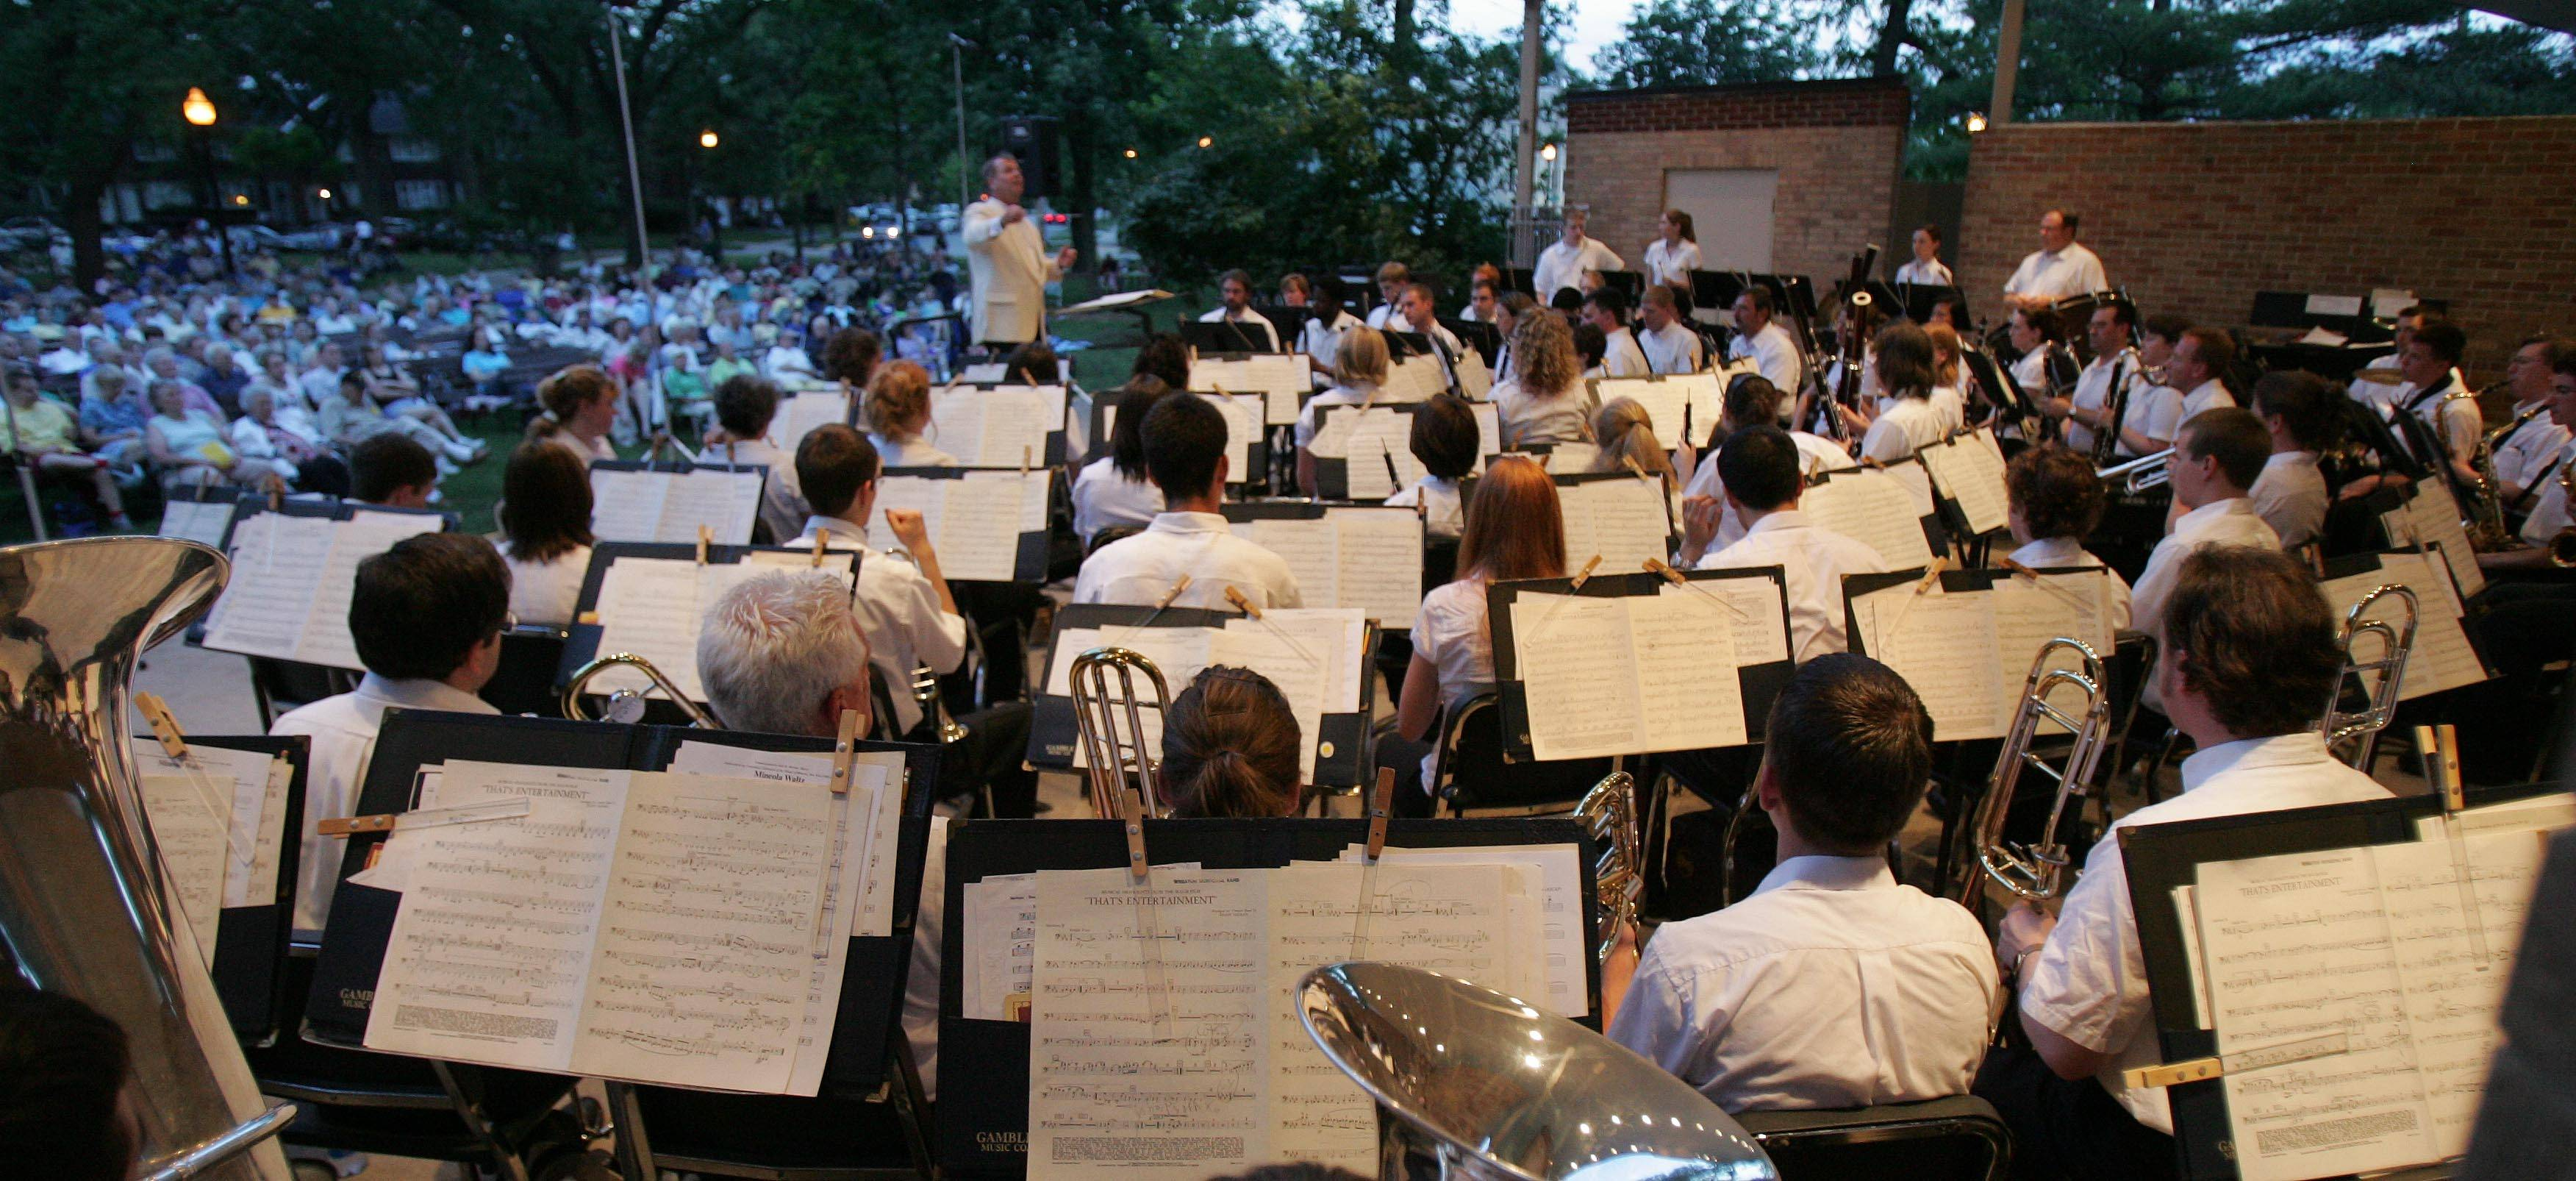 The 15th annual Wheaton Band Festival runs Friday and Saturday, July 18-19, in Memorial Park. Performers include the Nite Hawks and Swing Low Sweet Cadillac.